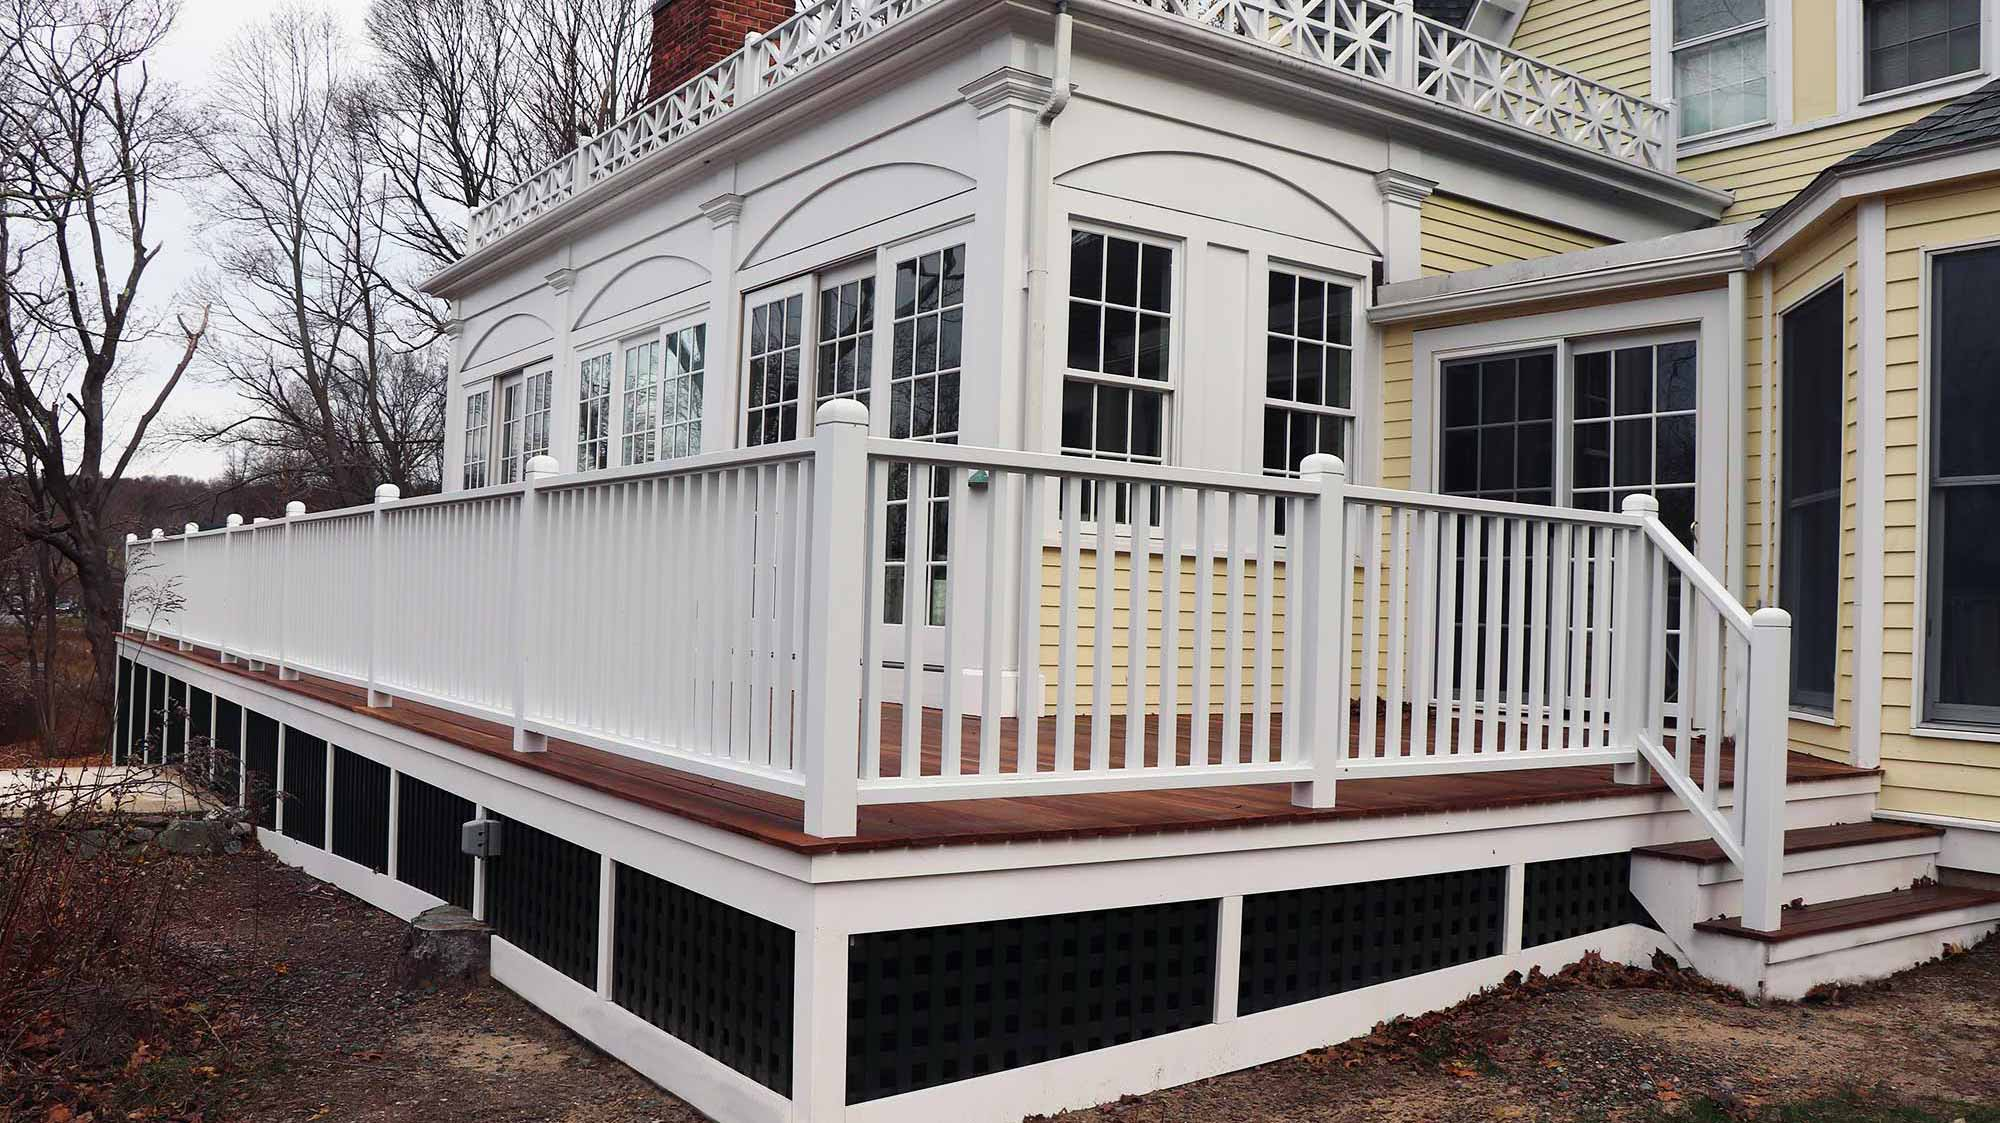 Here is a corner view of the expanded deck in Ipswich.